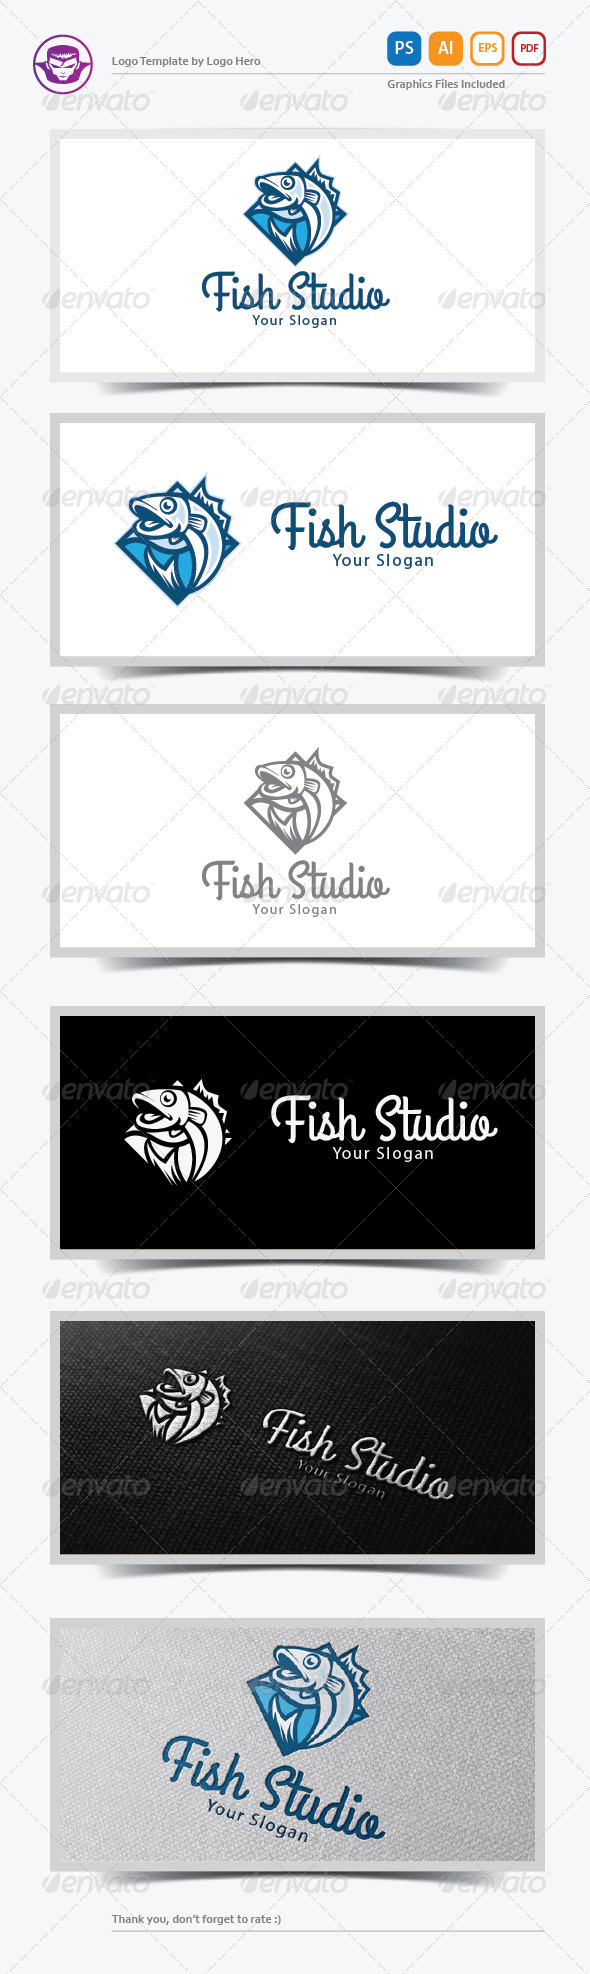 Fish Studio Logo Template